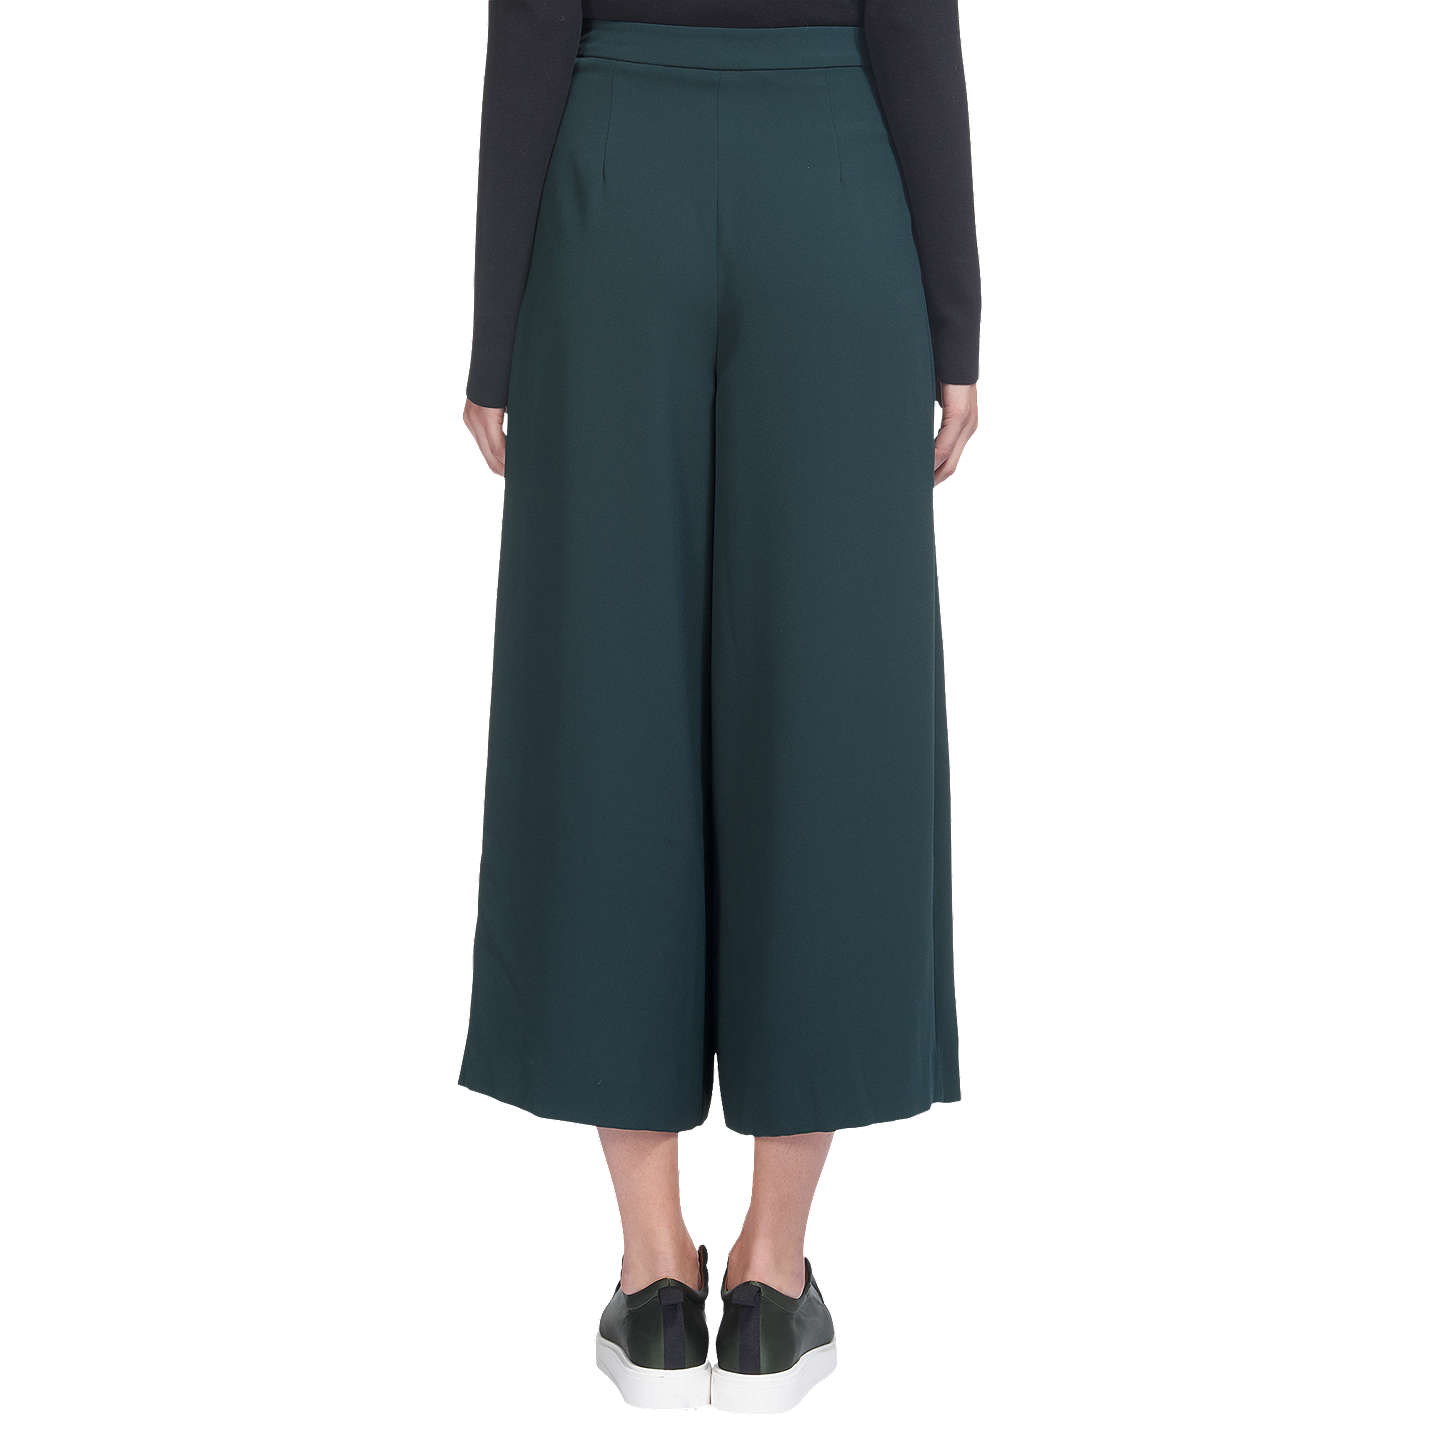 BuyWhistles Pleated Wide Leg Trousers, Dark Green, 6 Online at johnlewis.com